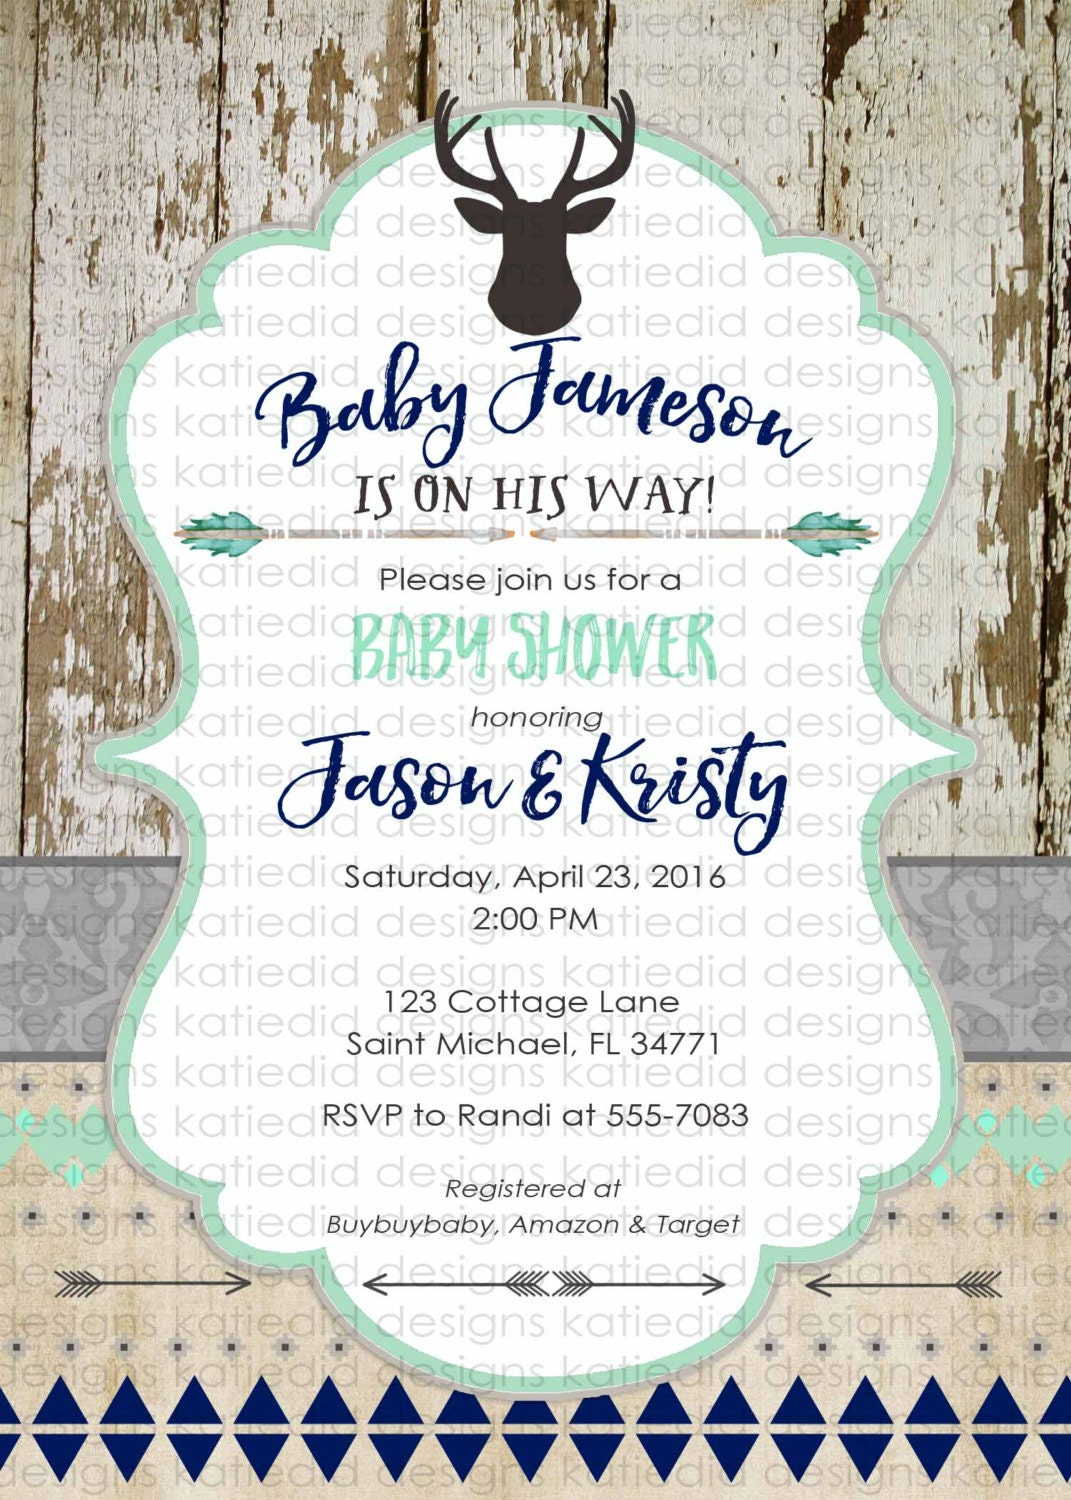 Tribal Baby Shower Invitation Boho Chic Bridal Coed Wedding